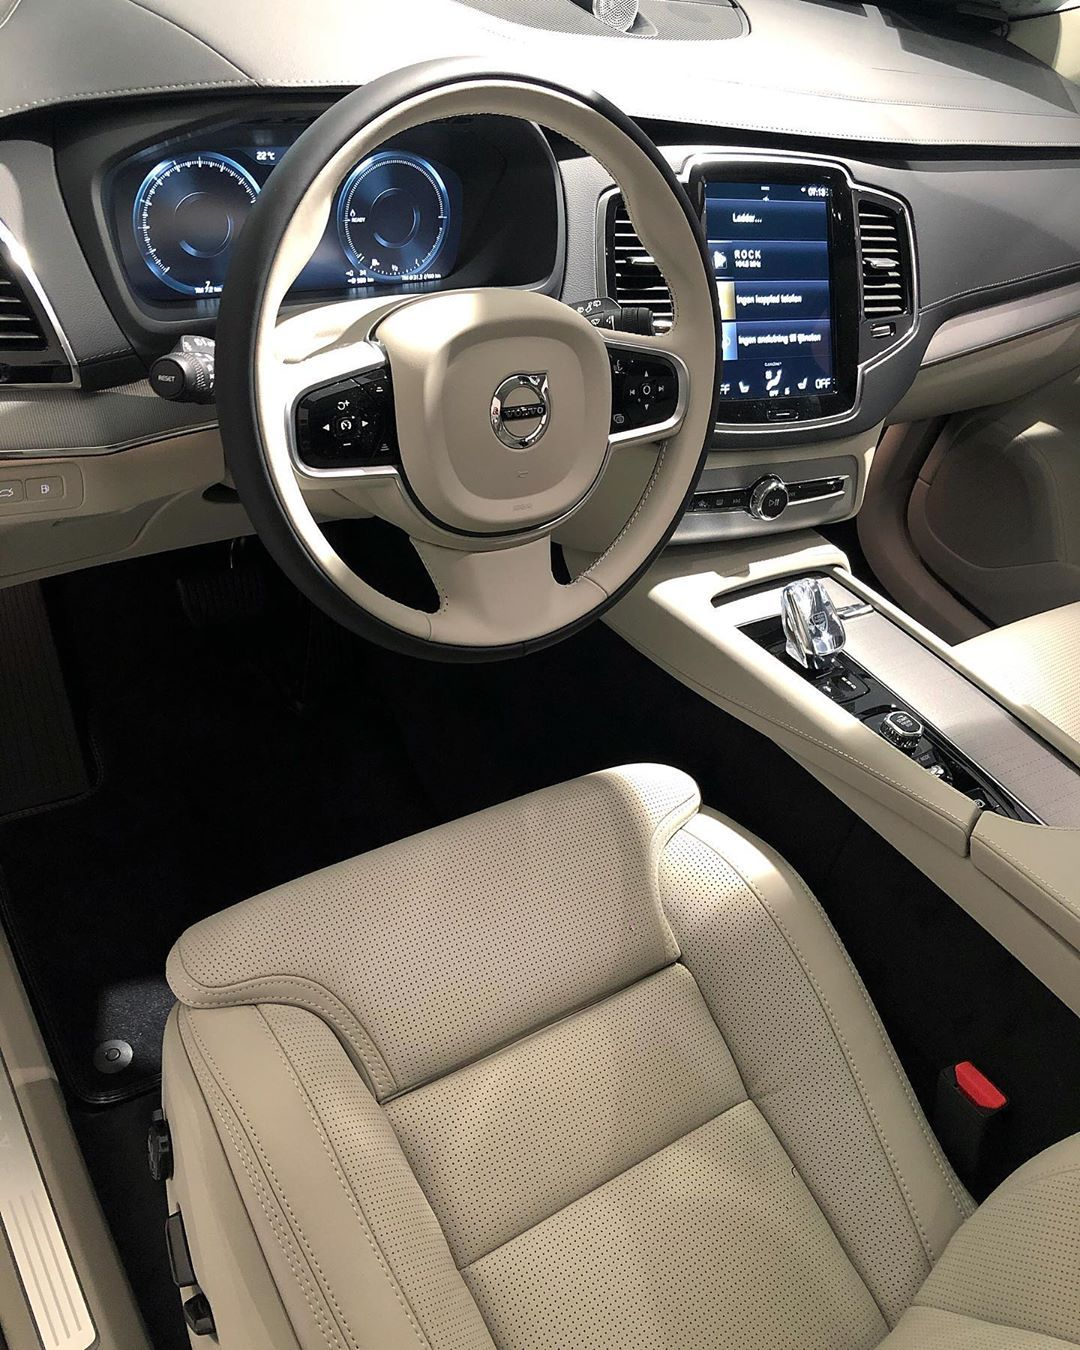 Volvo Cars On Instagram The Luxury Interior Of Volvo Xc90 Incription T8 The Best Seats In The Business Nappa Leather In 2020 Volvo Xc90 Volvo Volvo Cars